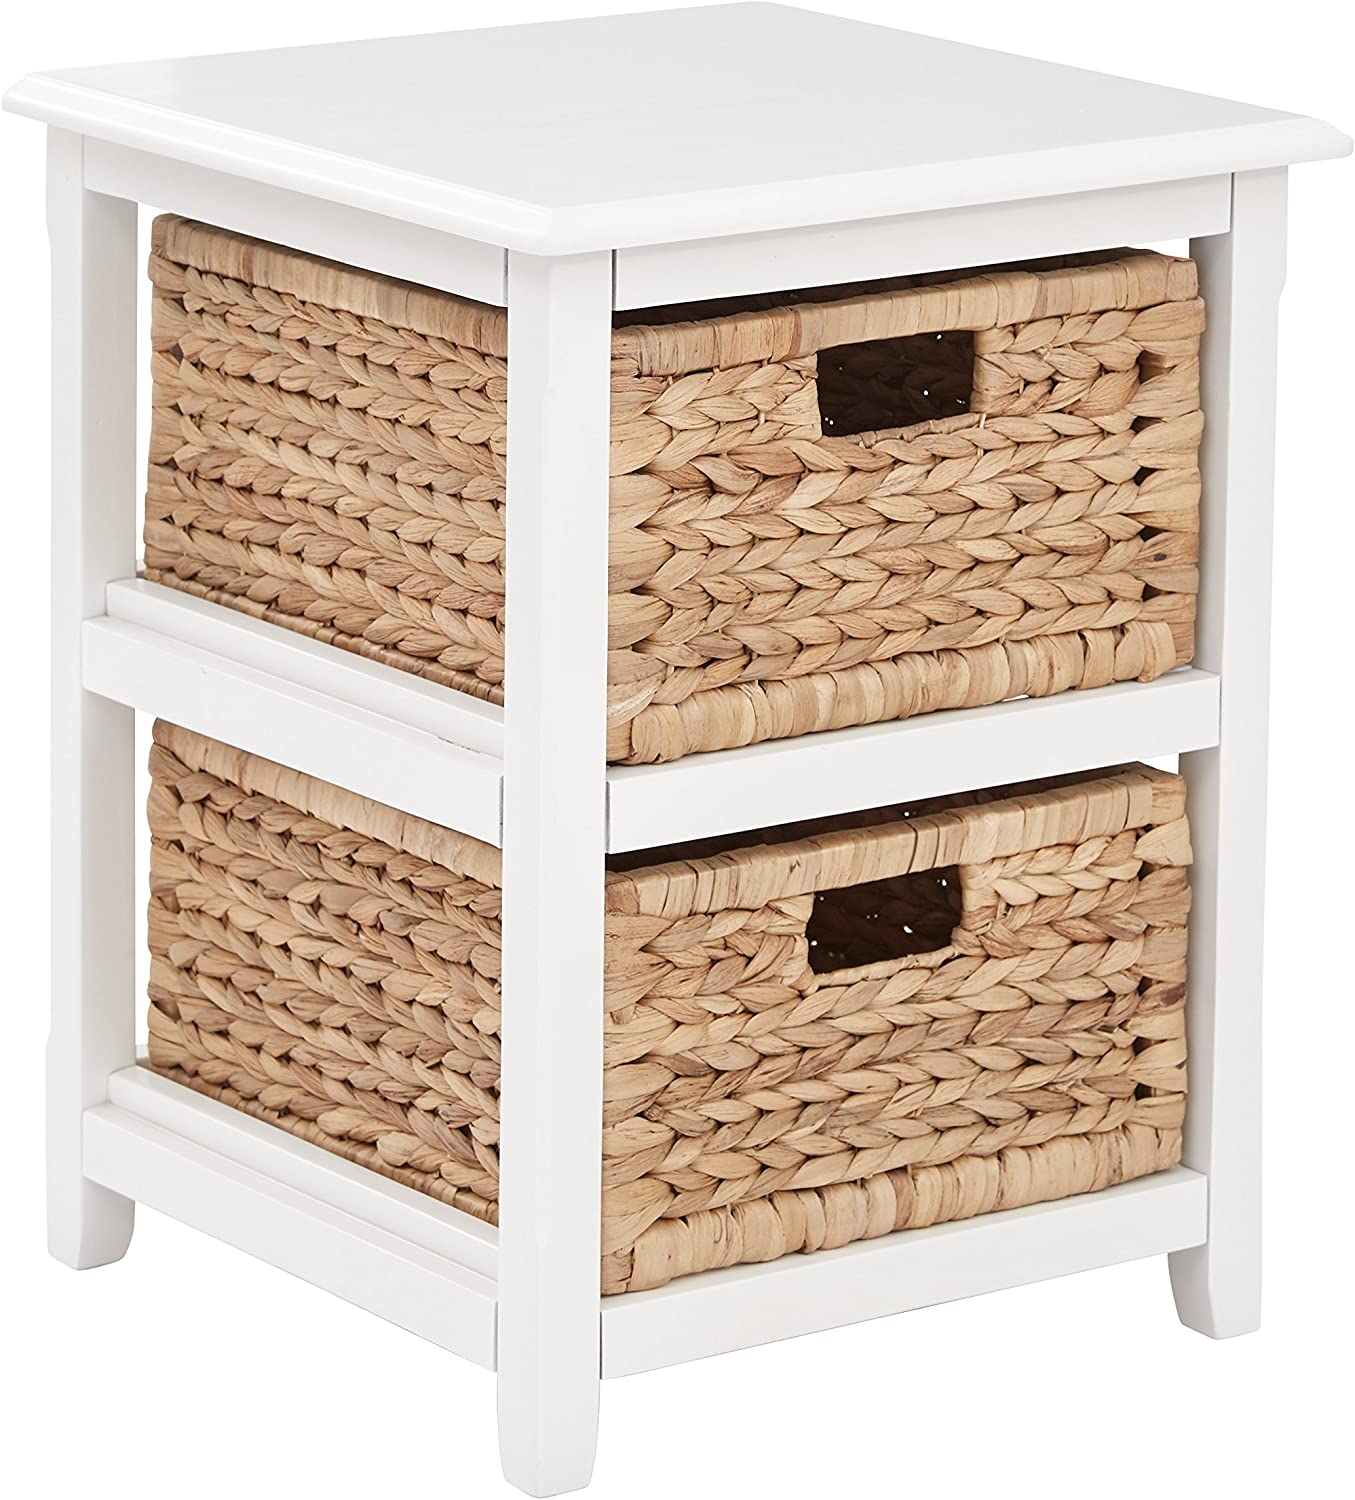 OSP Home Furnishings Seabrook 2-Tier Storage Unit with Natural Baskets, White Finish